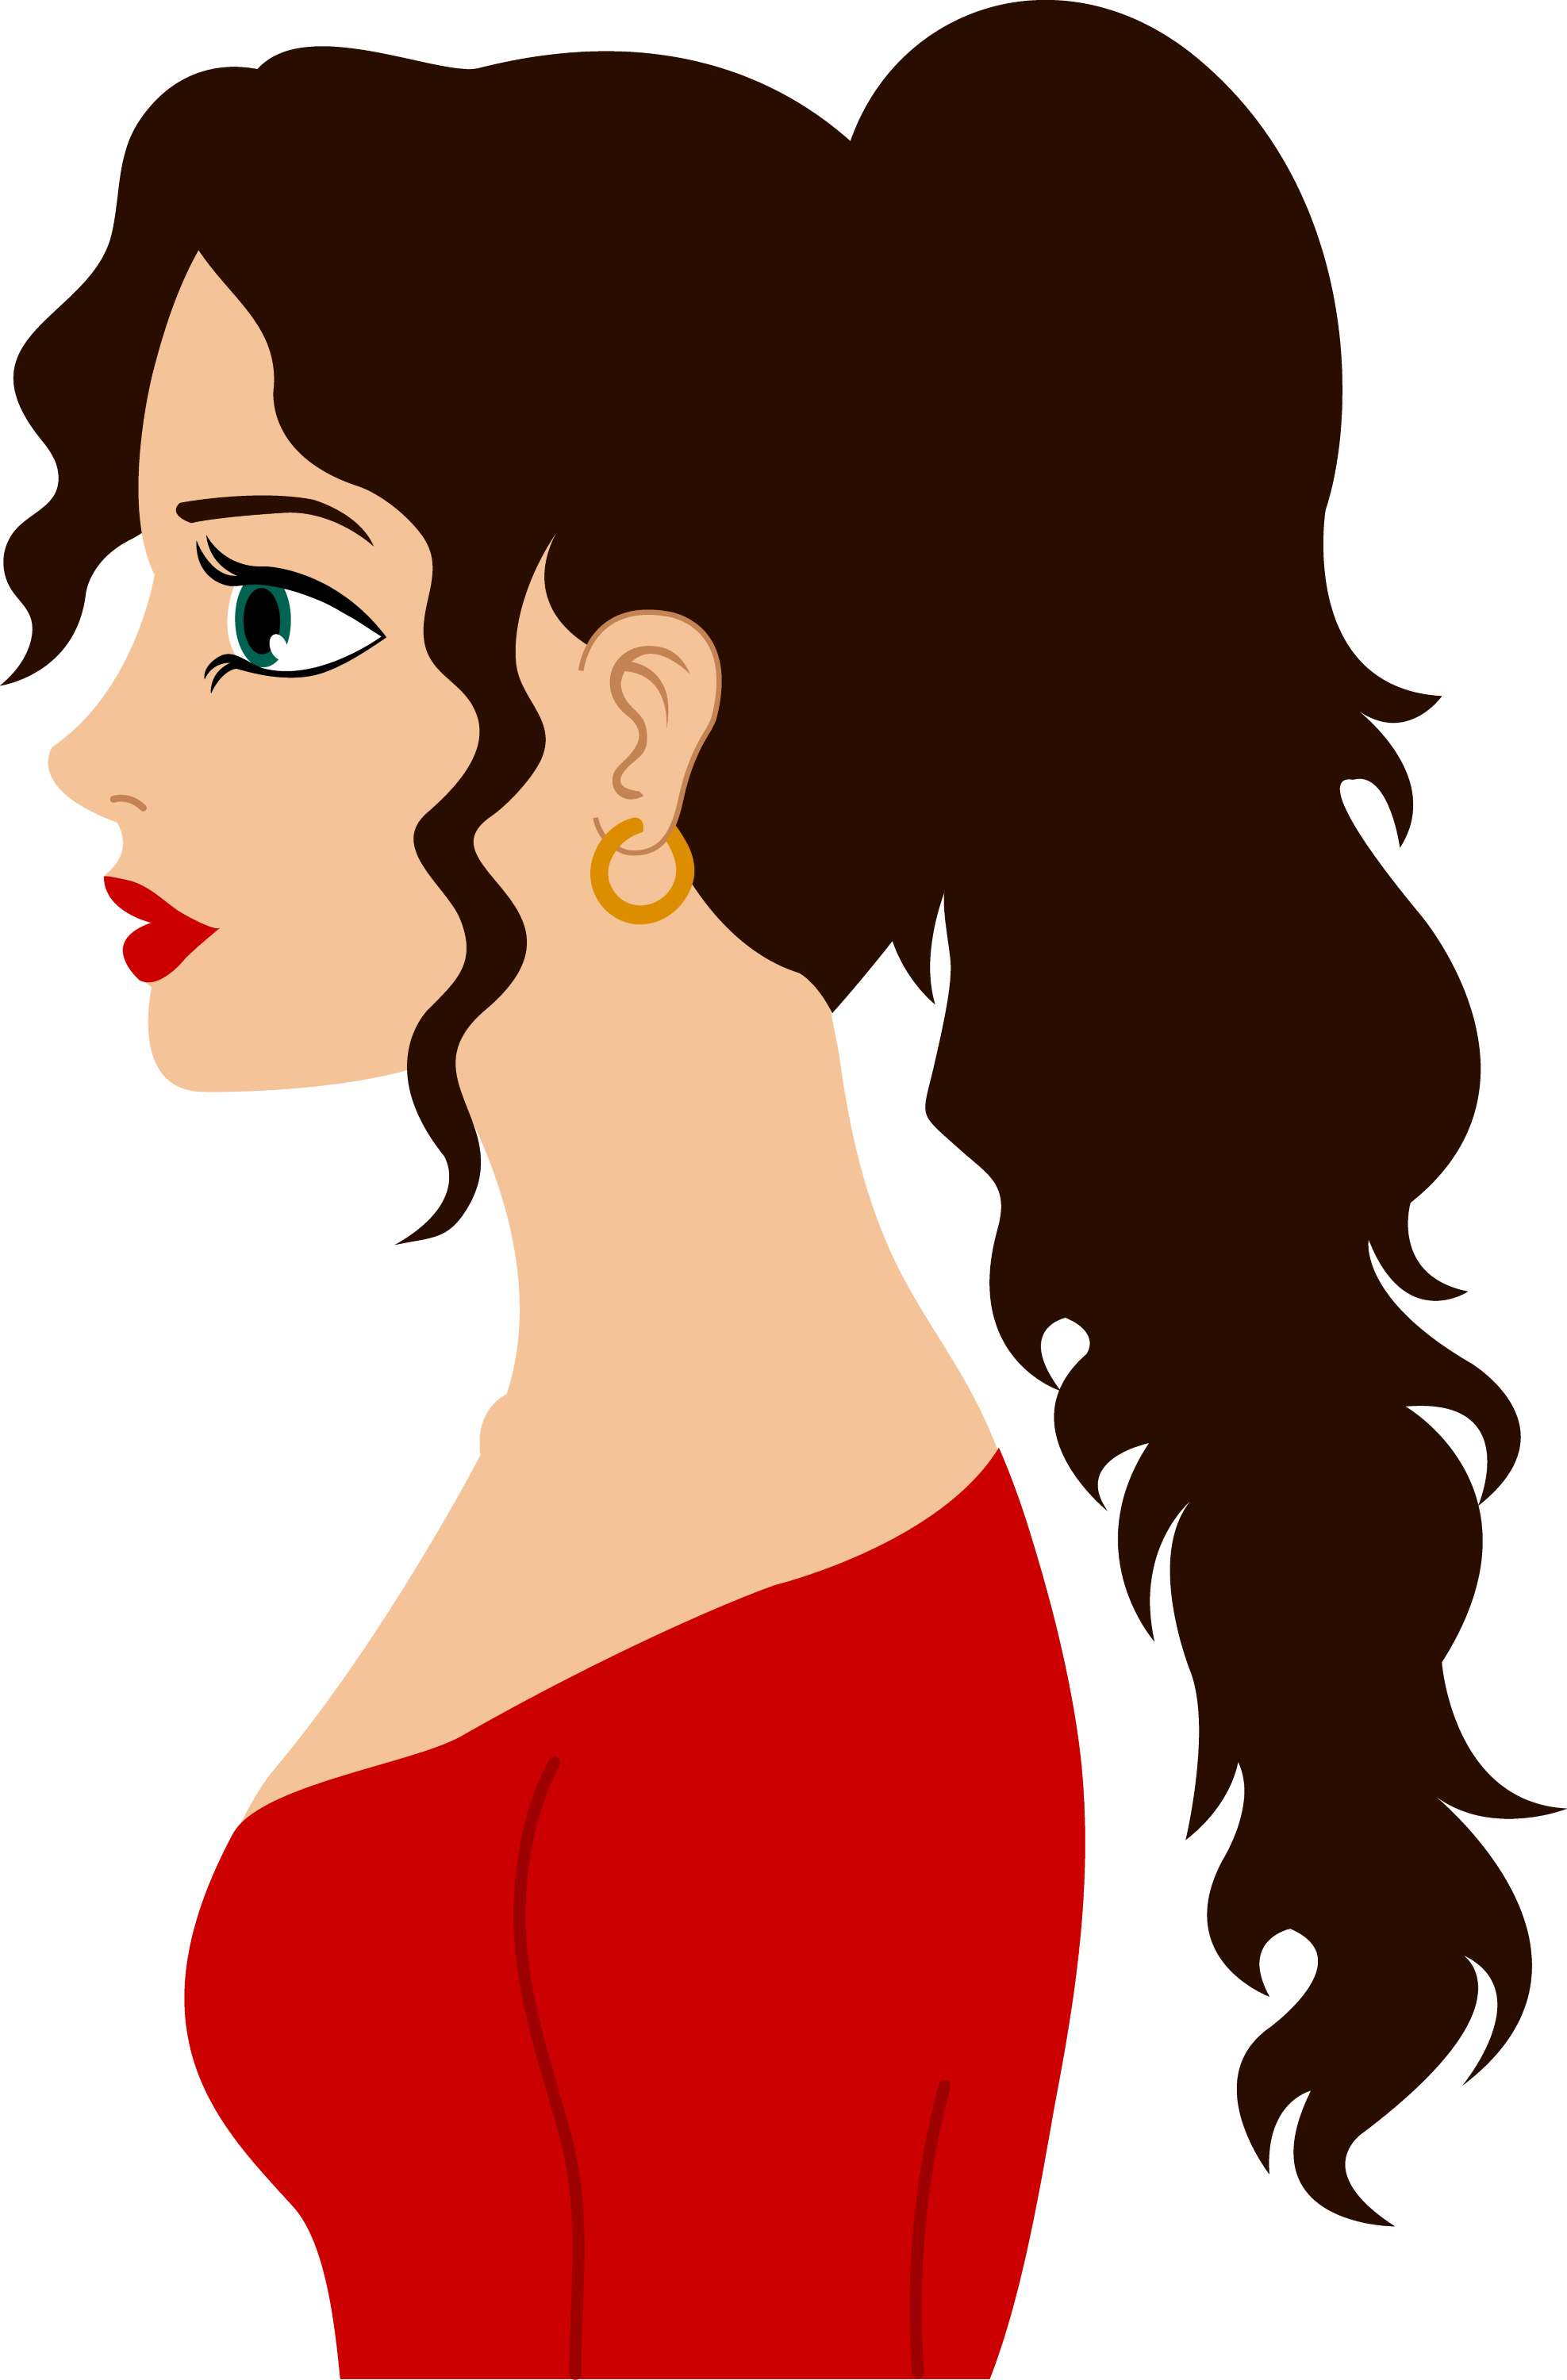 Side profile of woman with curly hair